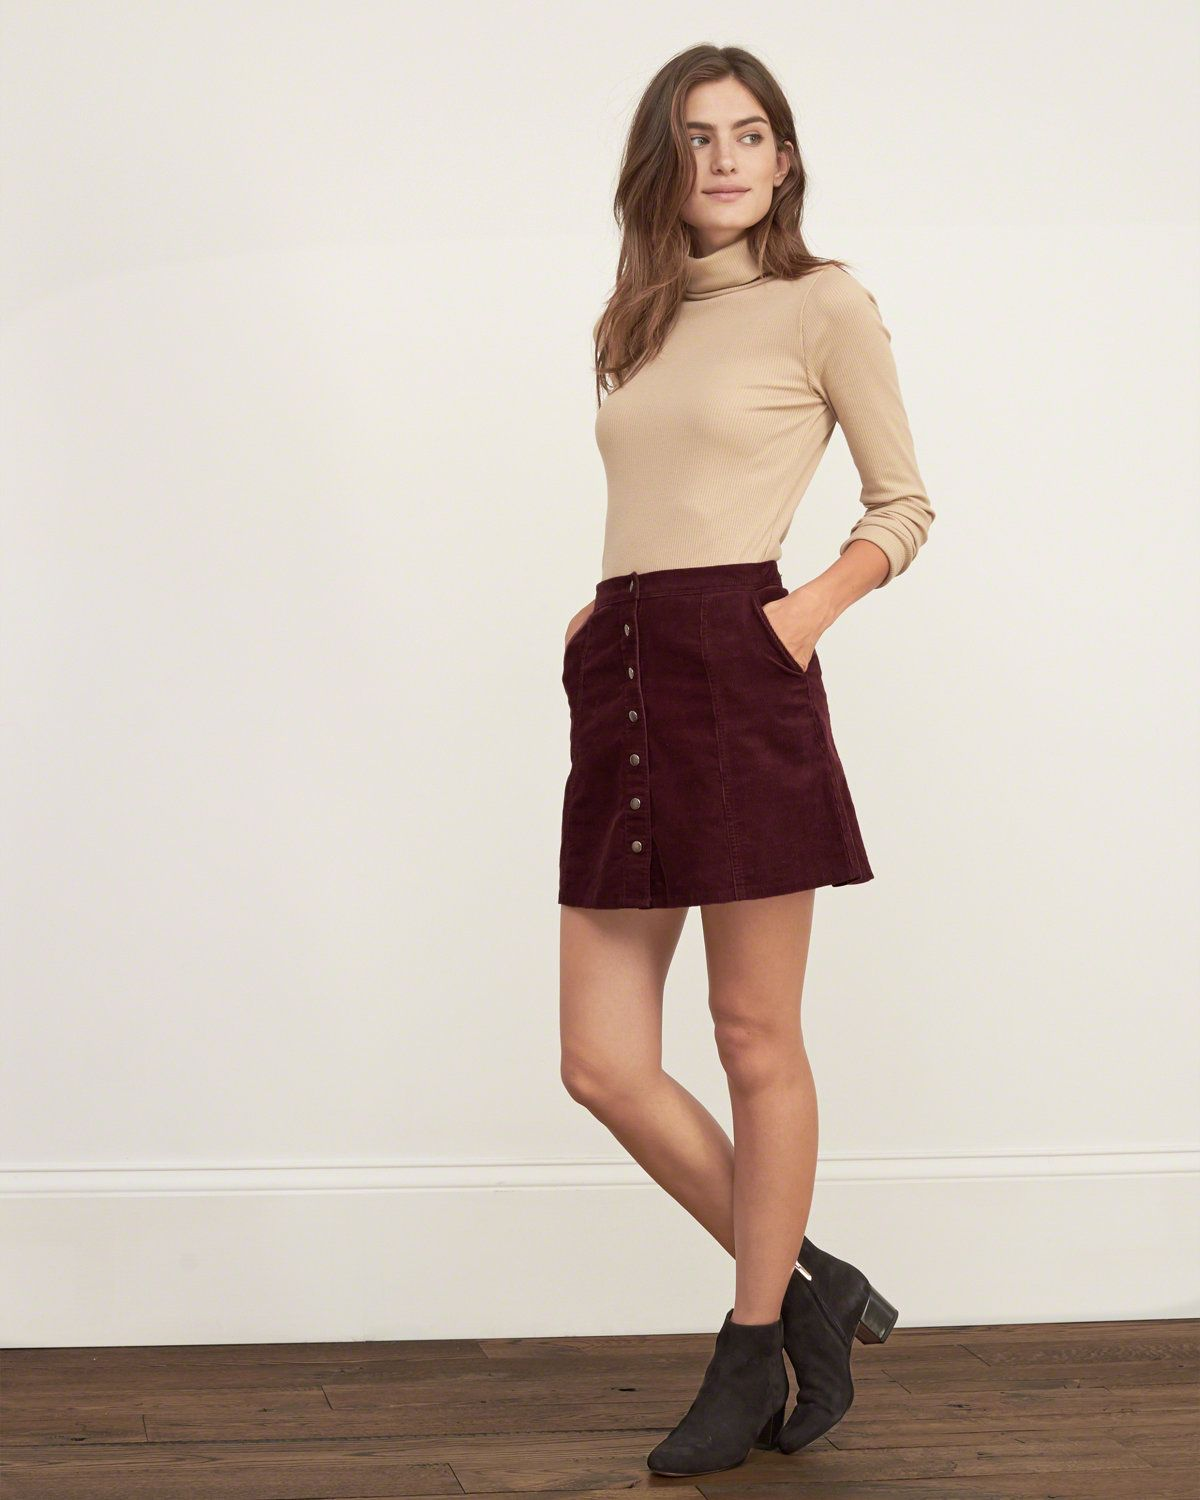 Cozy Wrap Skirt | Silhouettes and Fabrics